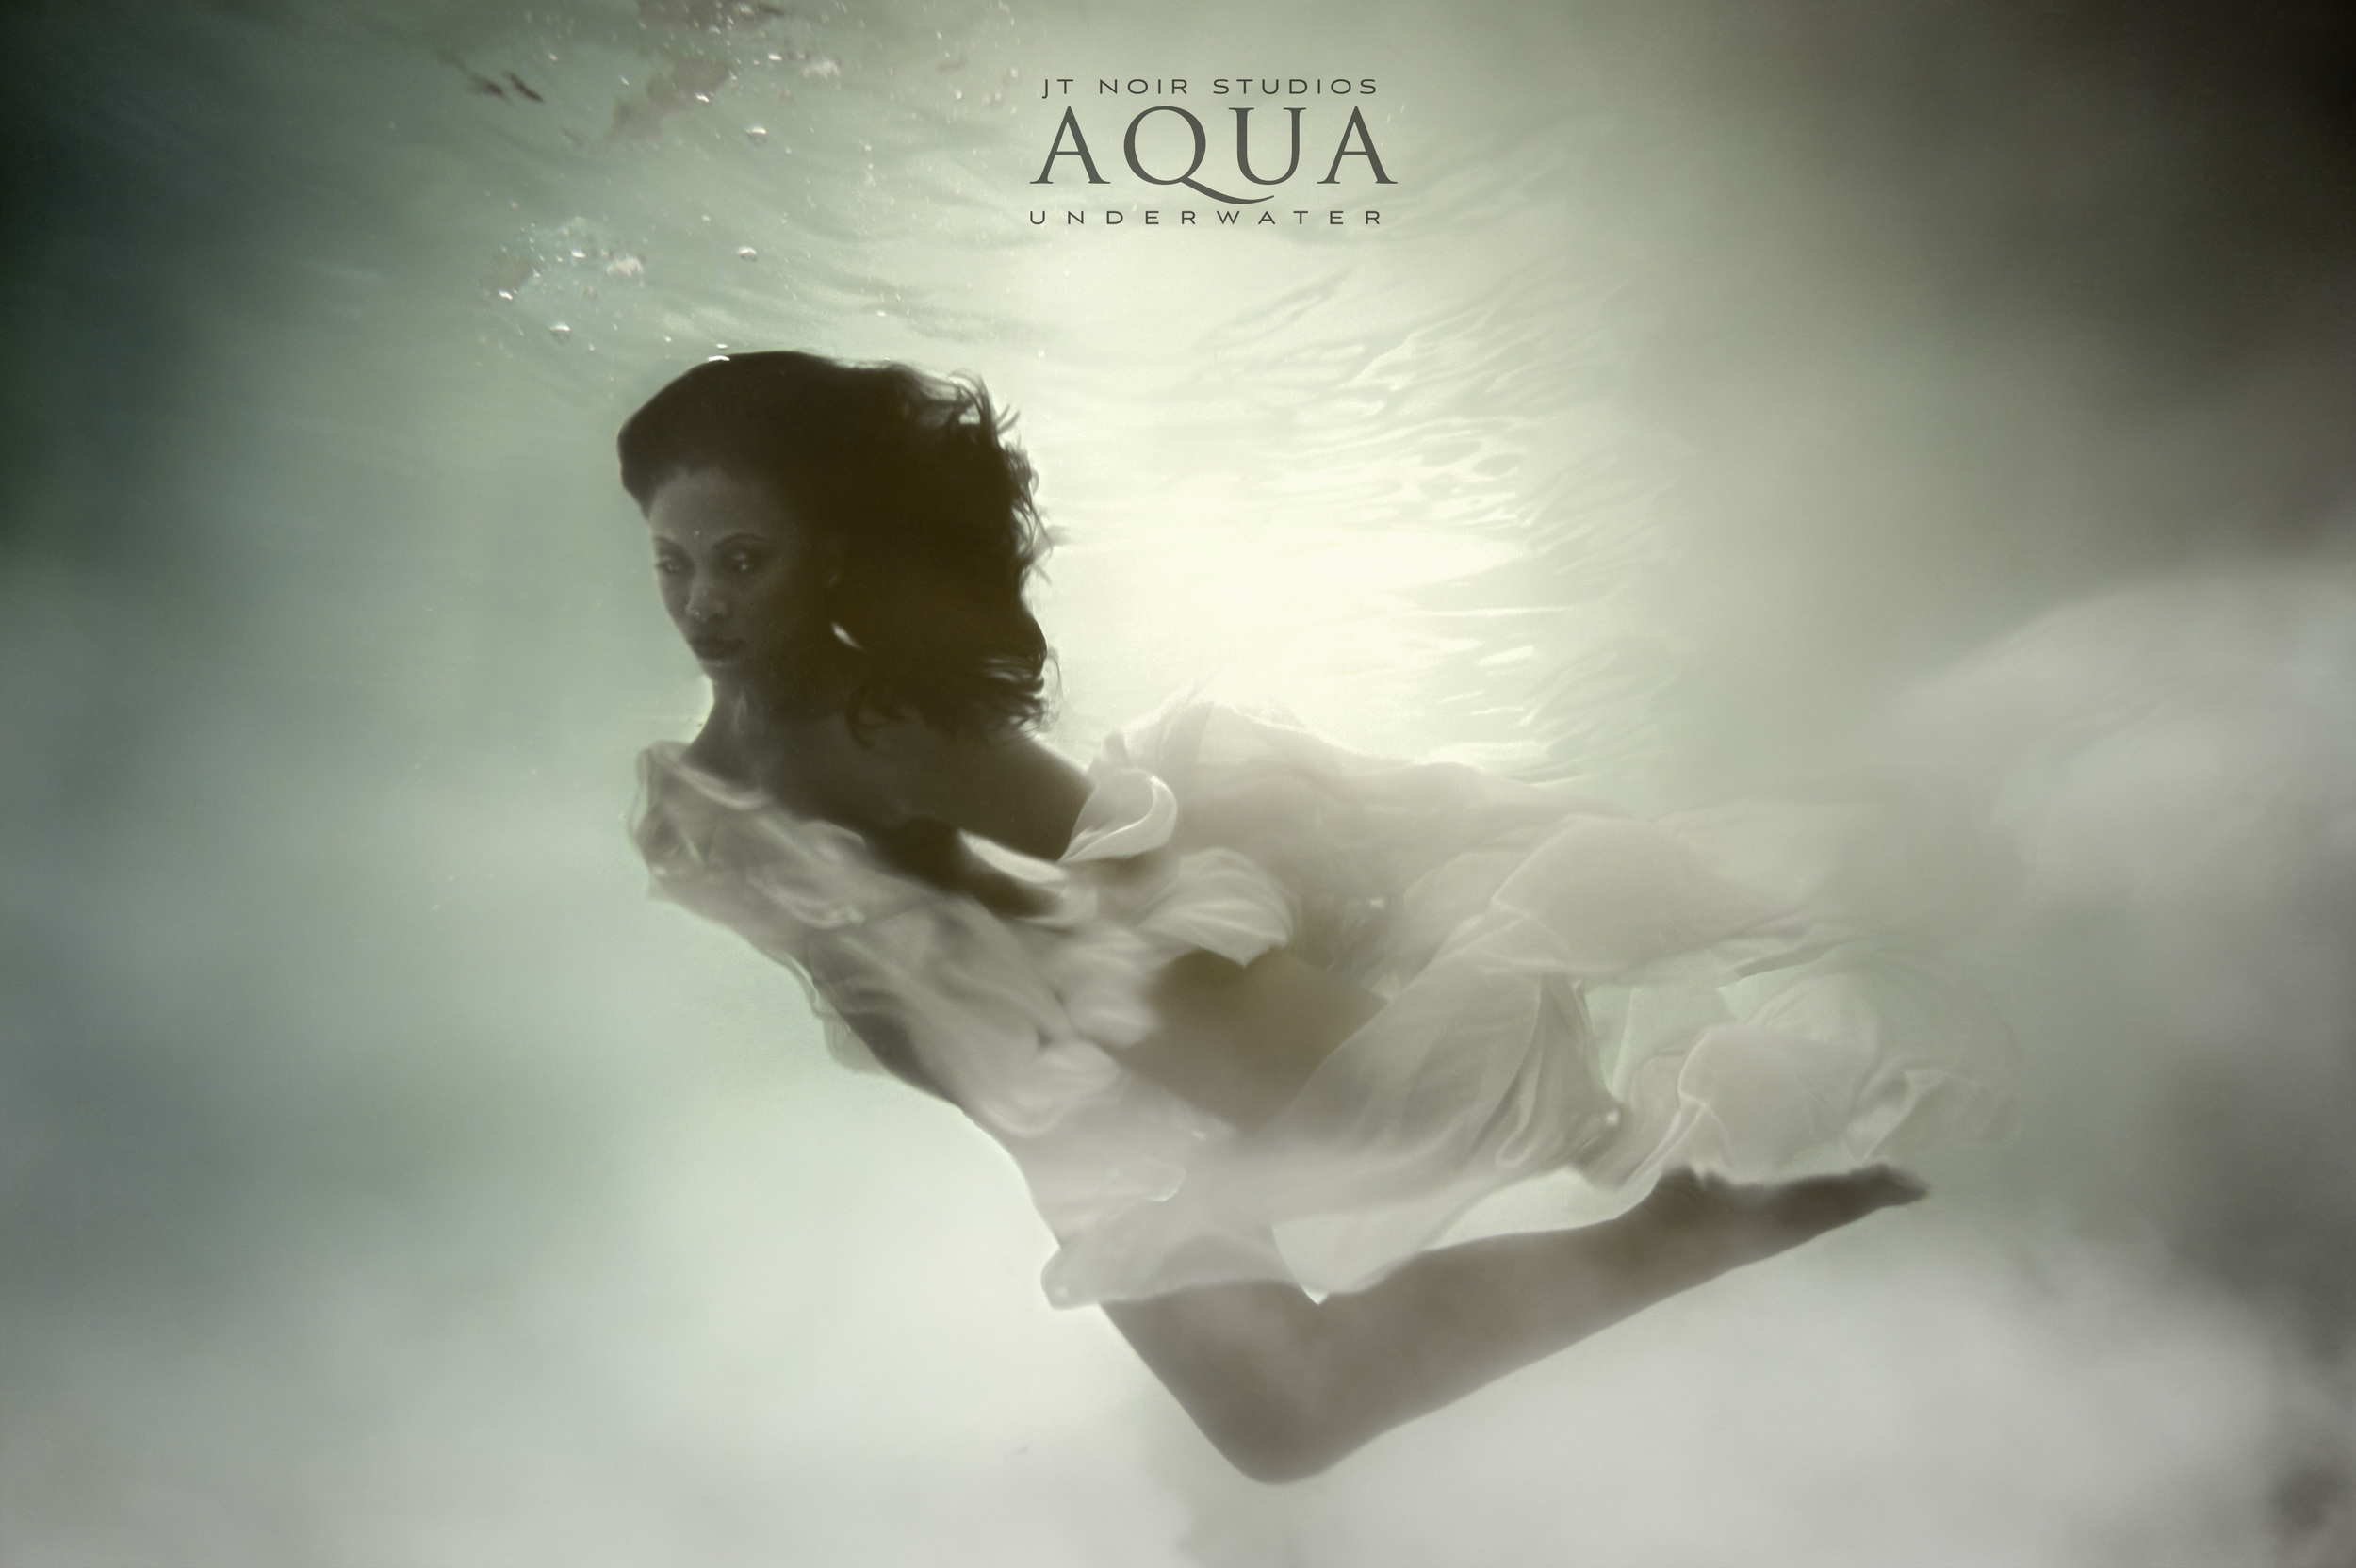 JTaqua_UNderwater_AIBP_retreat_Ojai_California__talia_2015.jpg